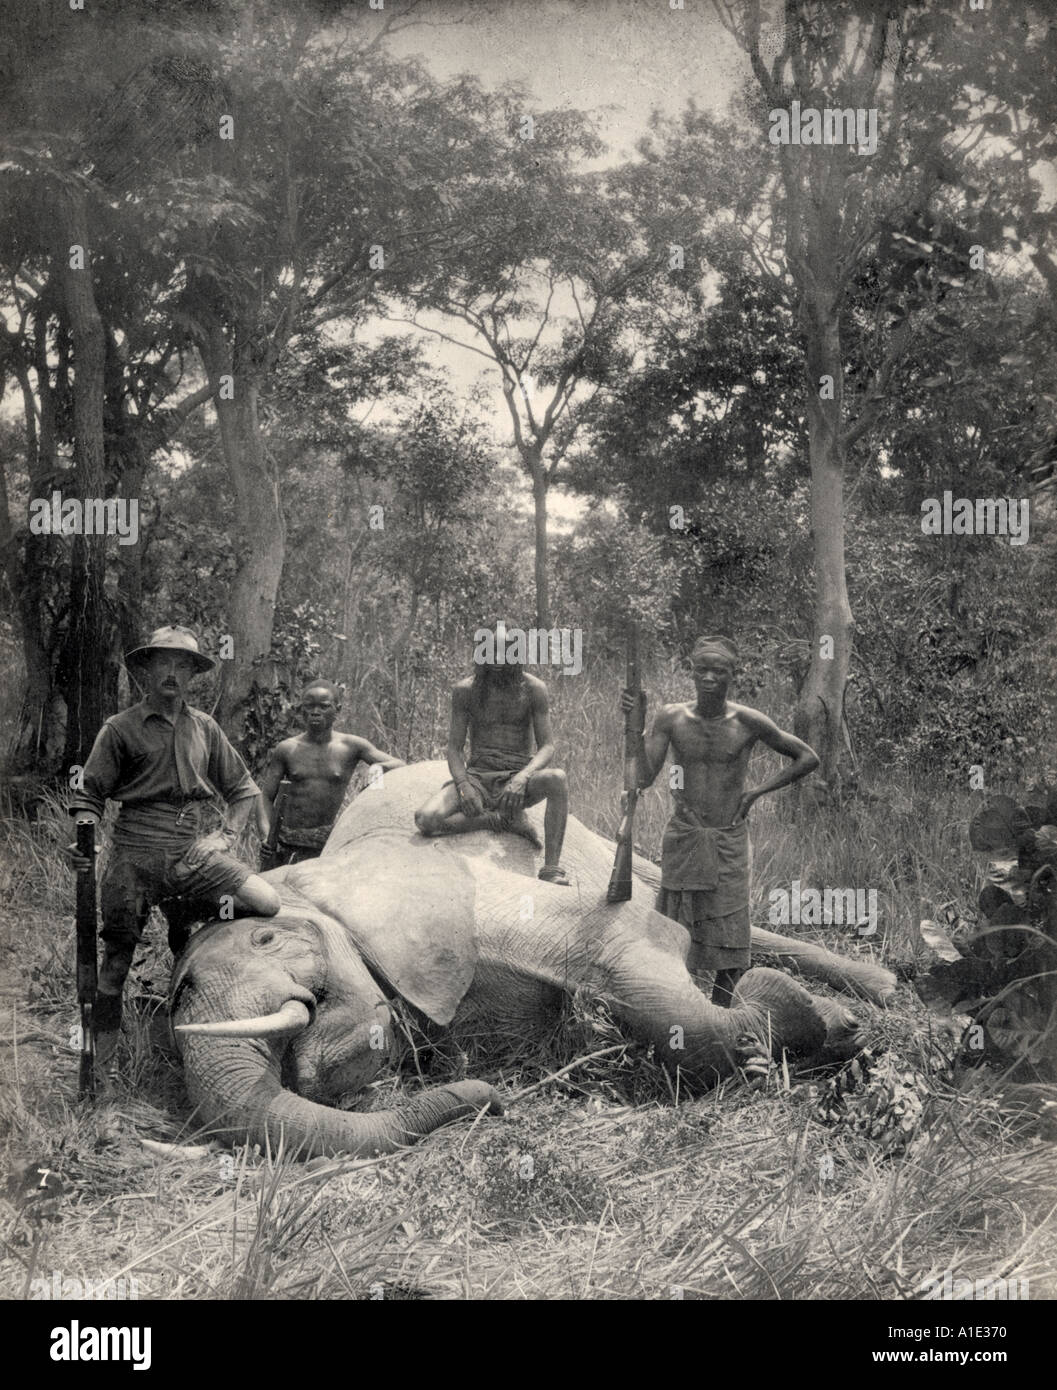 A European hunter with African men sit on a killed elephant - Stock Image